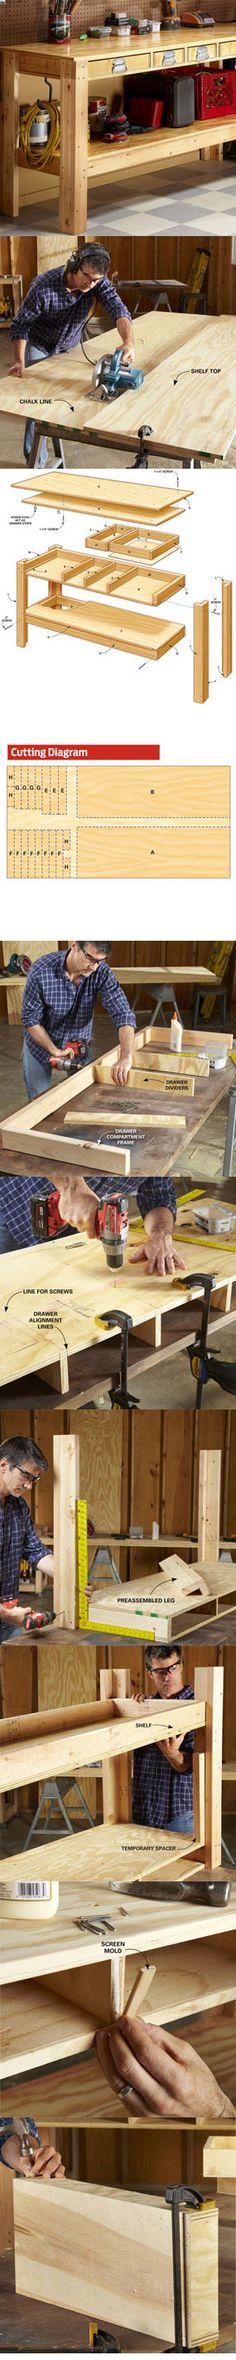 Use this simple workbench plan to build a sturdy, tough workbench that'll last for decades. It has drawers and shelves for tool storage. It's inexpensive. And even a novice can build it in one day. ( I think this could easily be painted all cute for a craft room table too!)